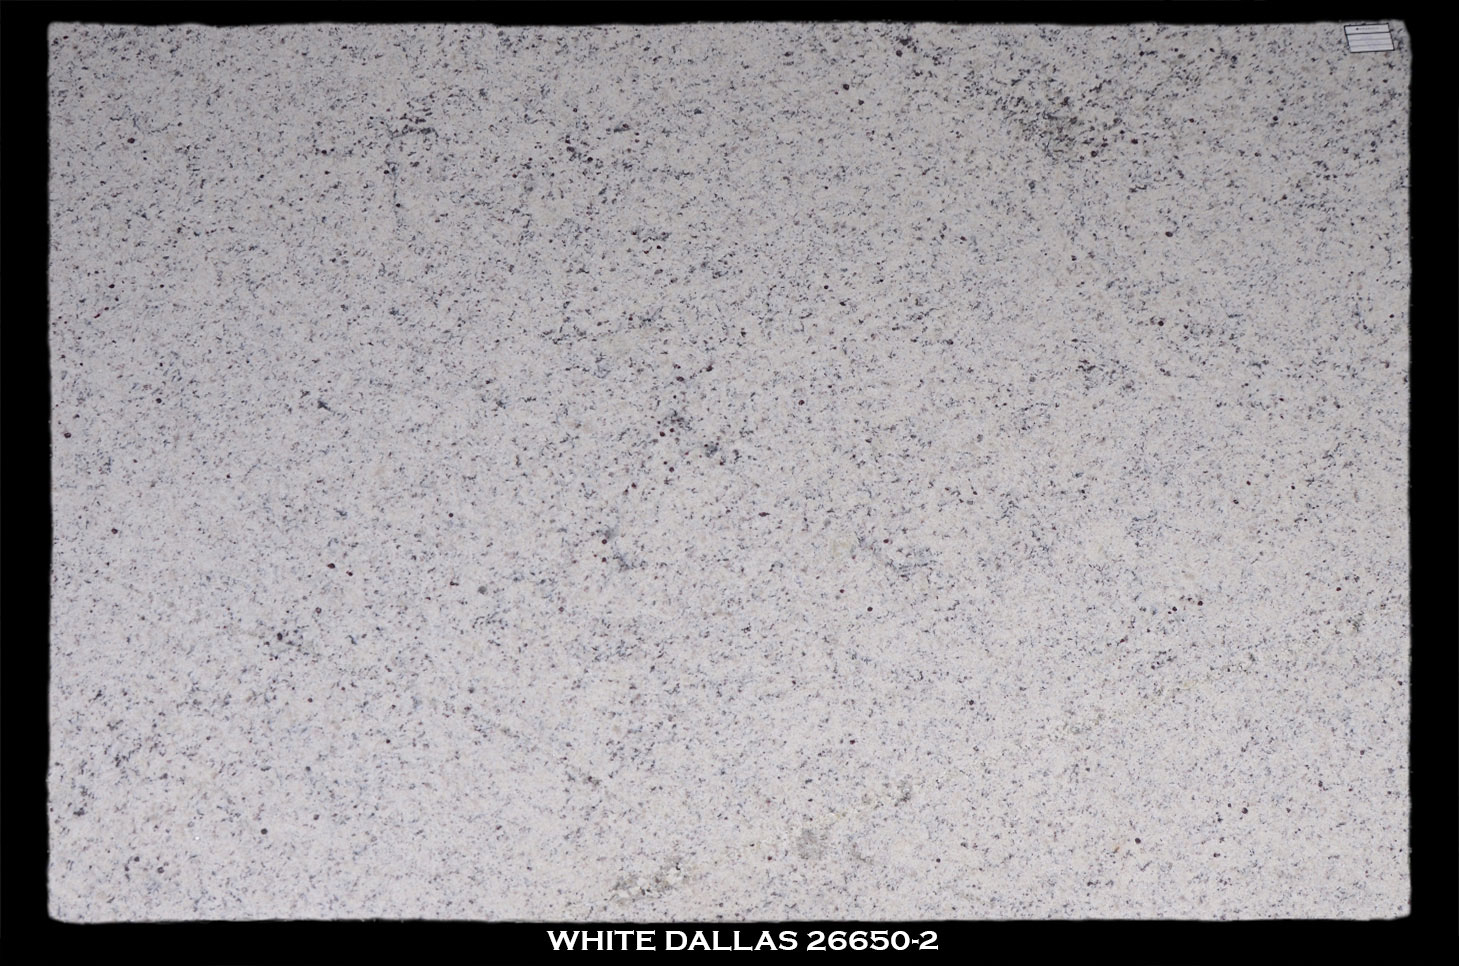 WHITE-DALLAS-26650-SLAB